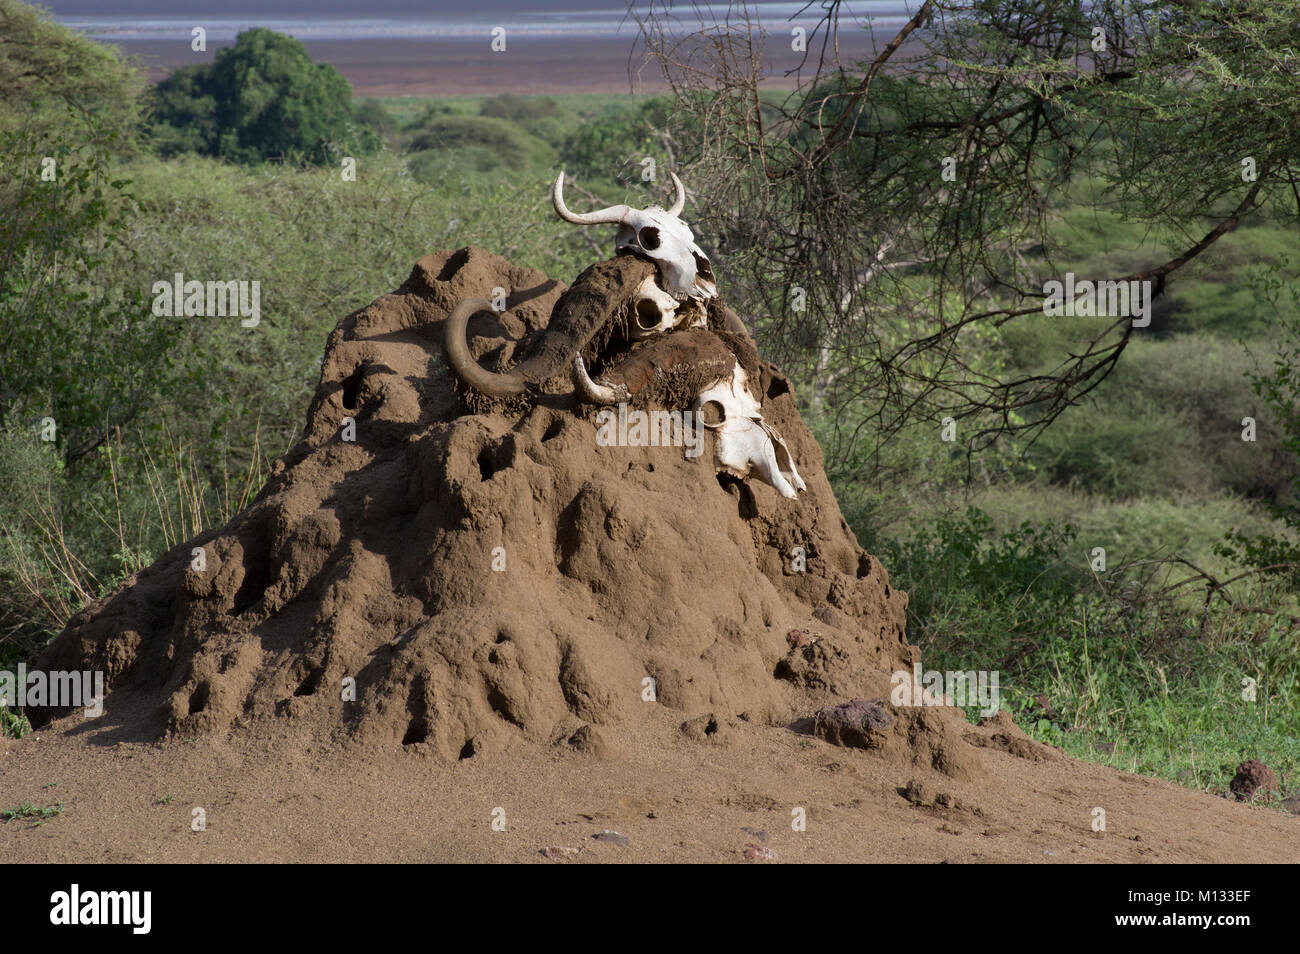 African buffalo skulls with horns bleached white displayed on a termite mound in the Serengeti, Arusha, North Tanzania - Stock Image